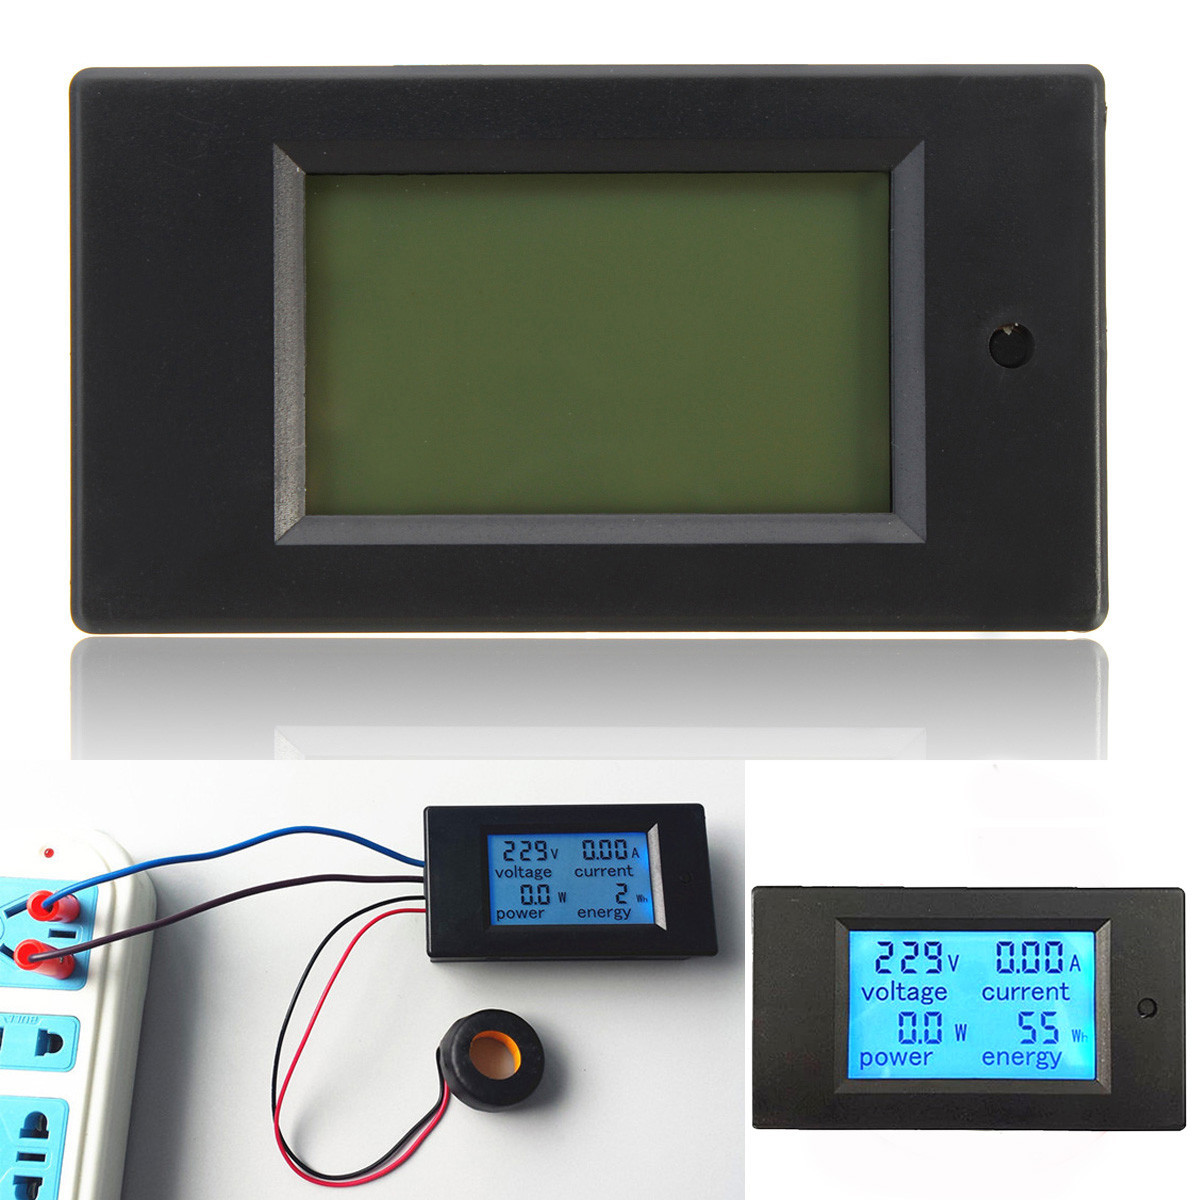 2 Pcs 100A AC Daya LED Digital Panel Meter Power Monitor Energi Pengukur Tegangan Volt Pengukur